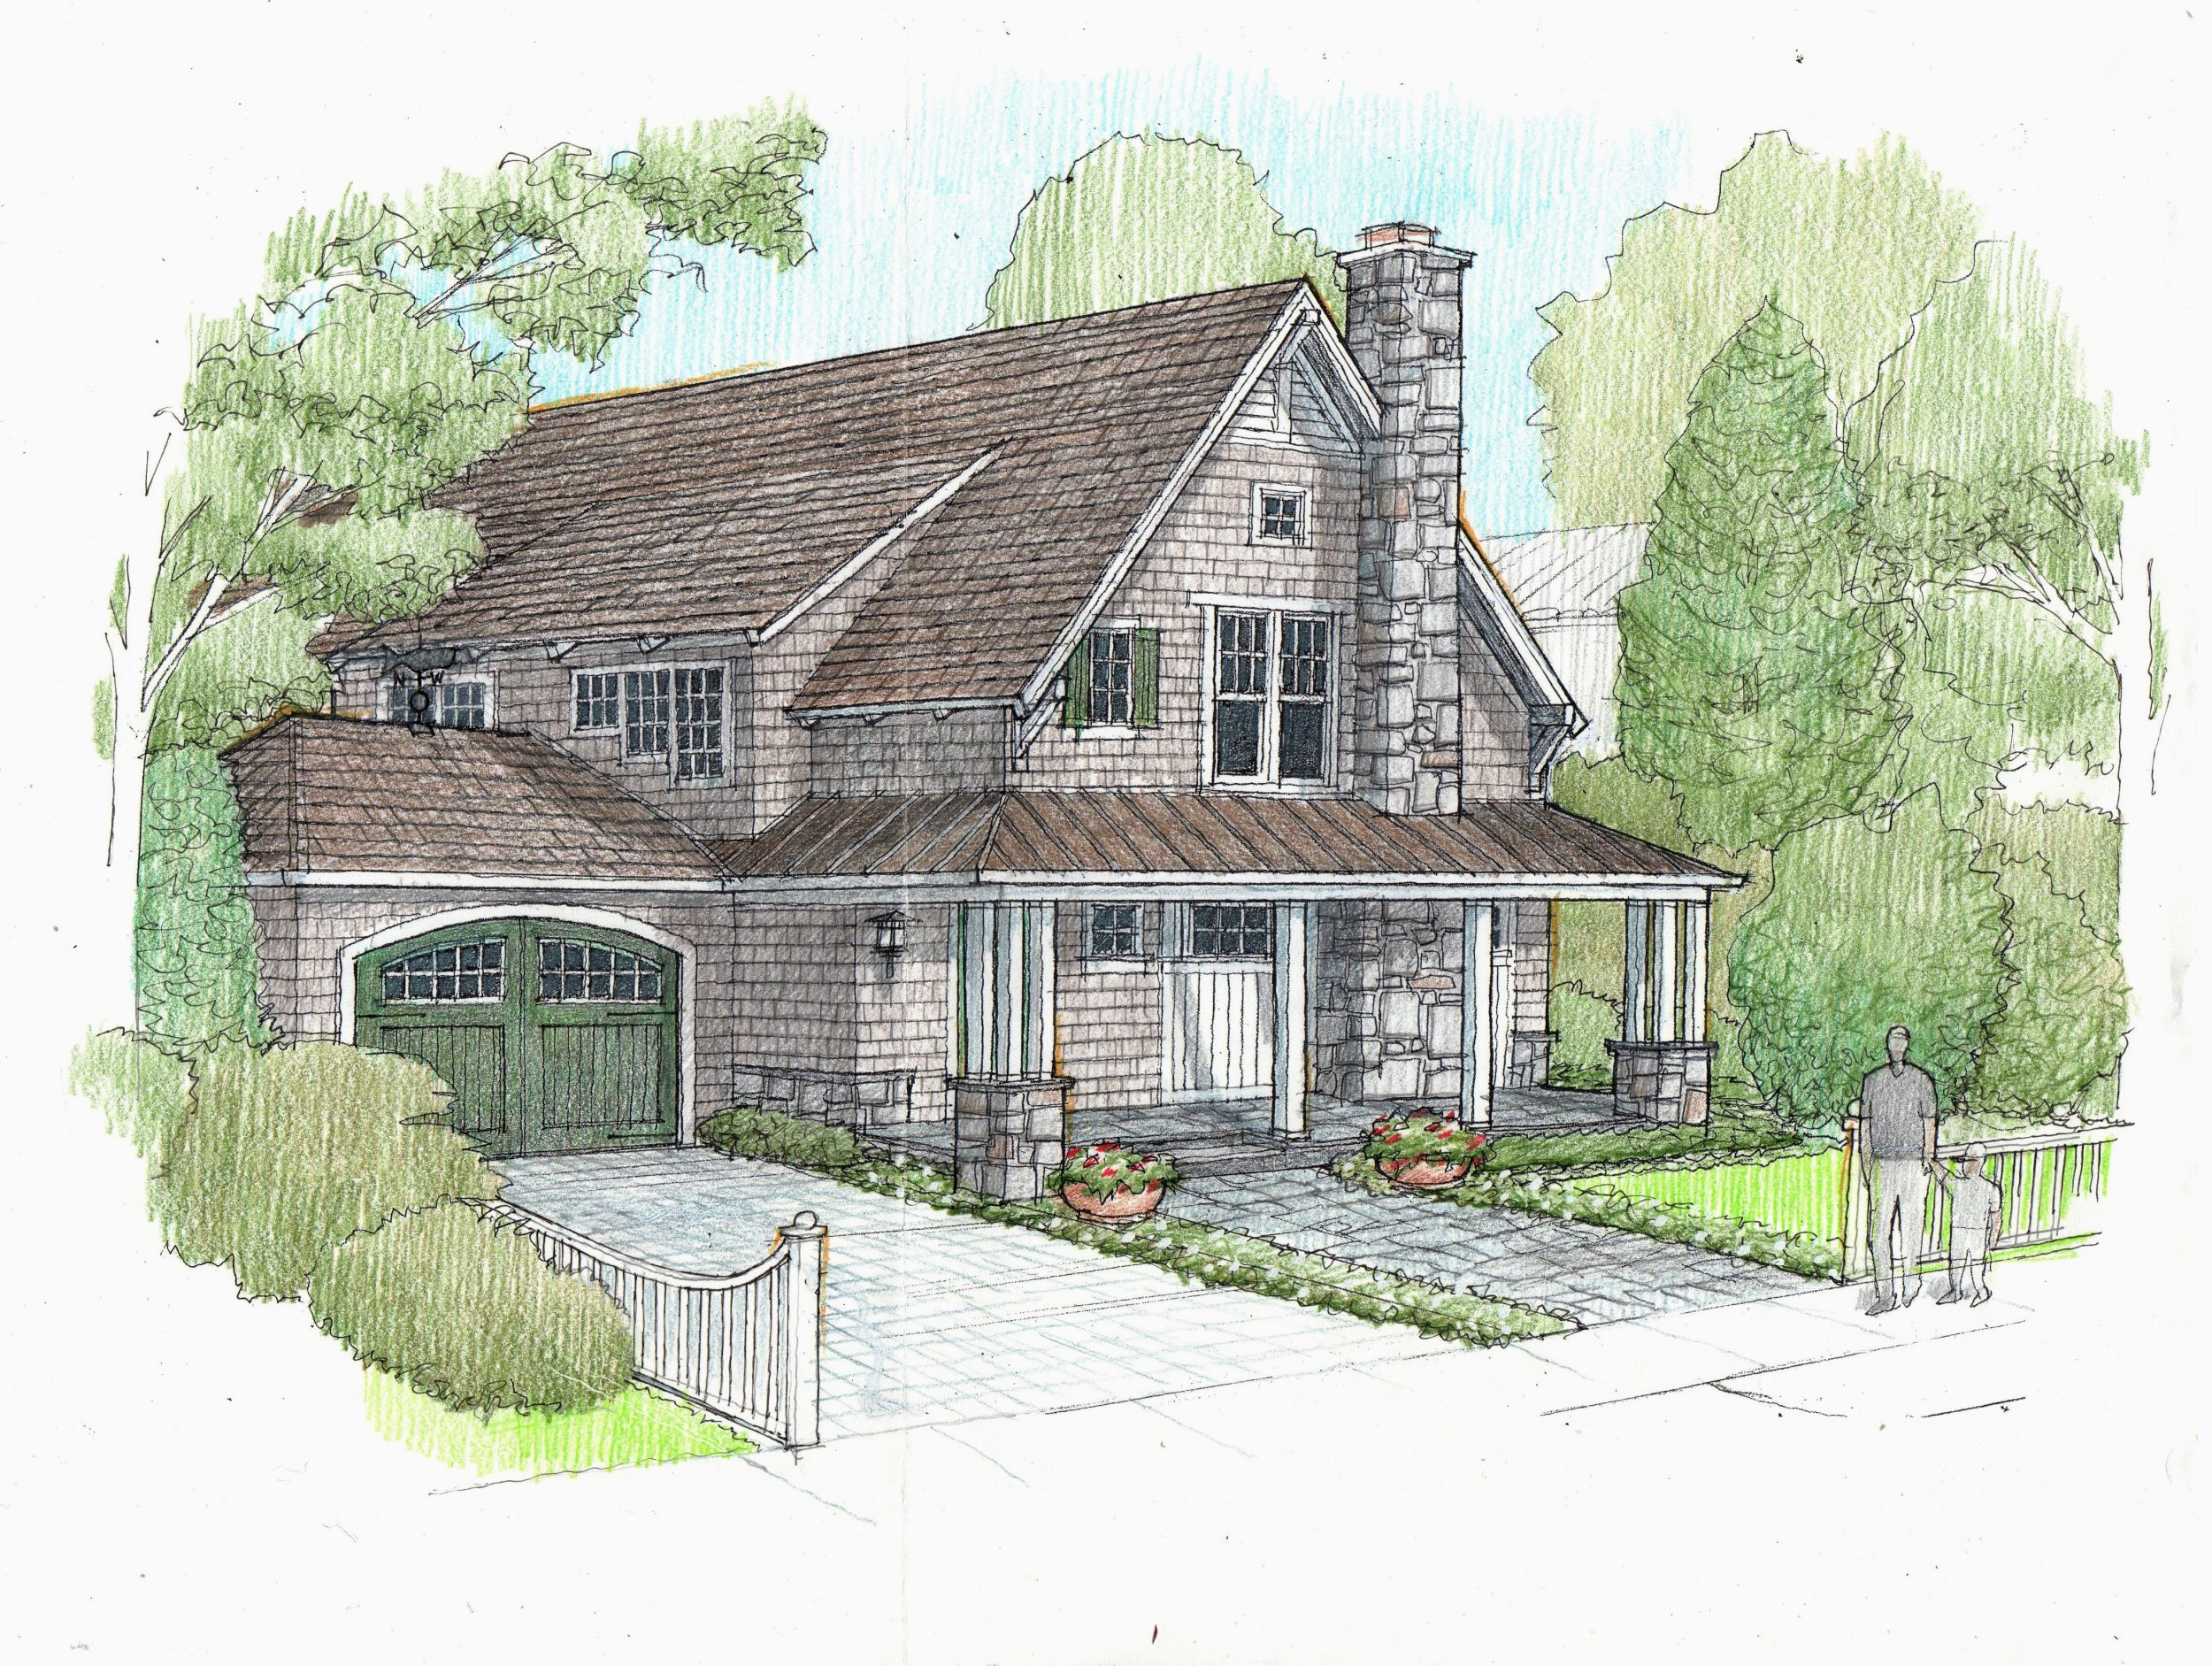 Build. - Once your design is approved, Stephen will coordinate with contractors and suppliers for all aspects of your home's construction. He will closely monitor each step of the build to make certain your home realizes its full potential and is completed in a timely manner.